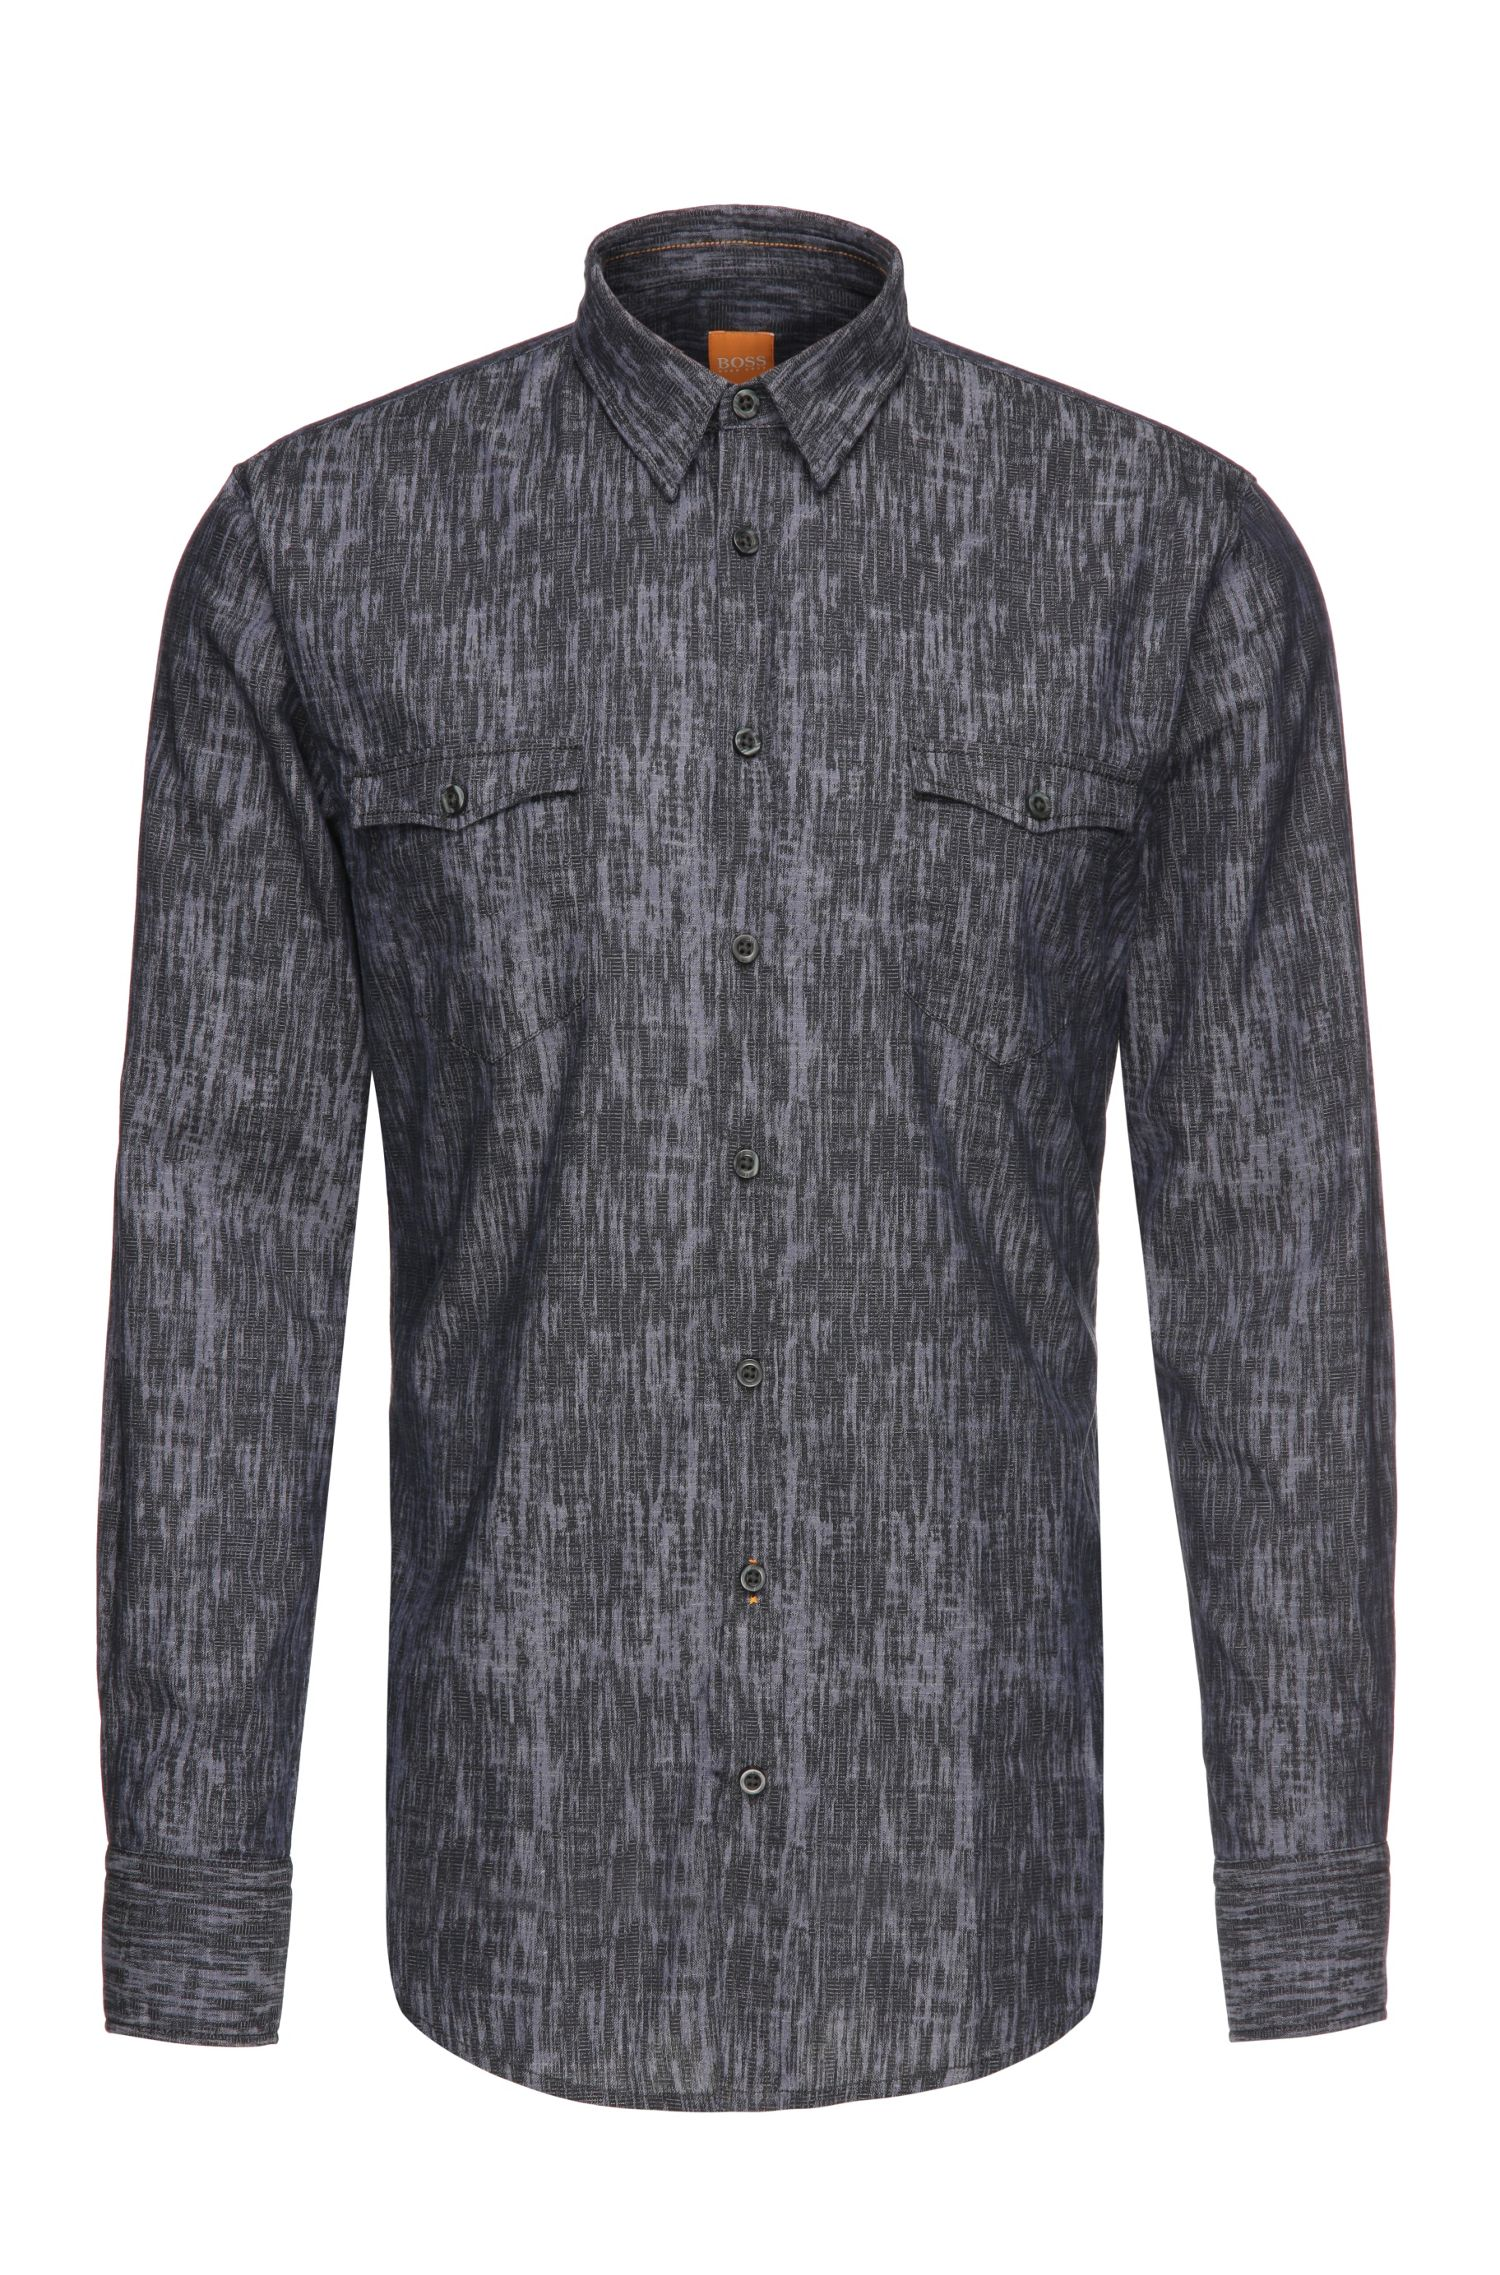 'EdoslimE' | Slim Fit, Cotton Printed Chambray Button Down Shirt